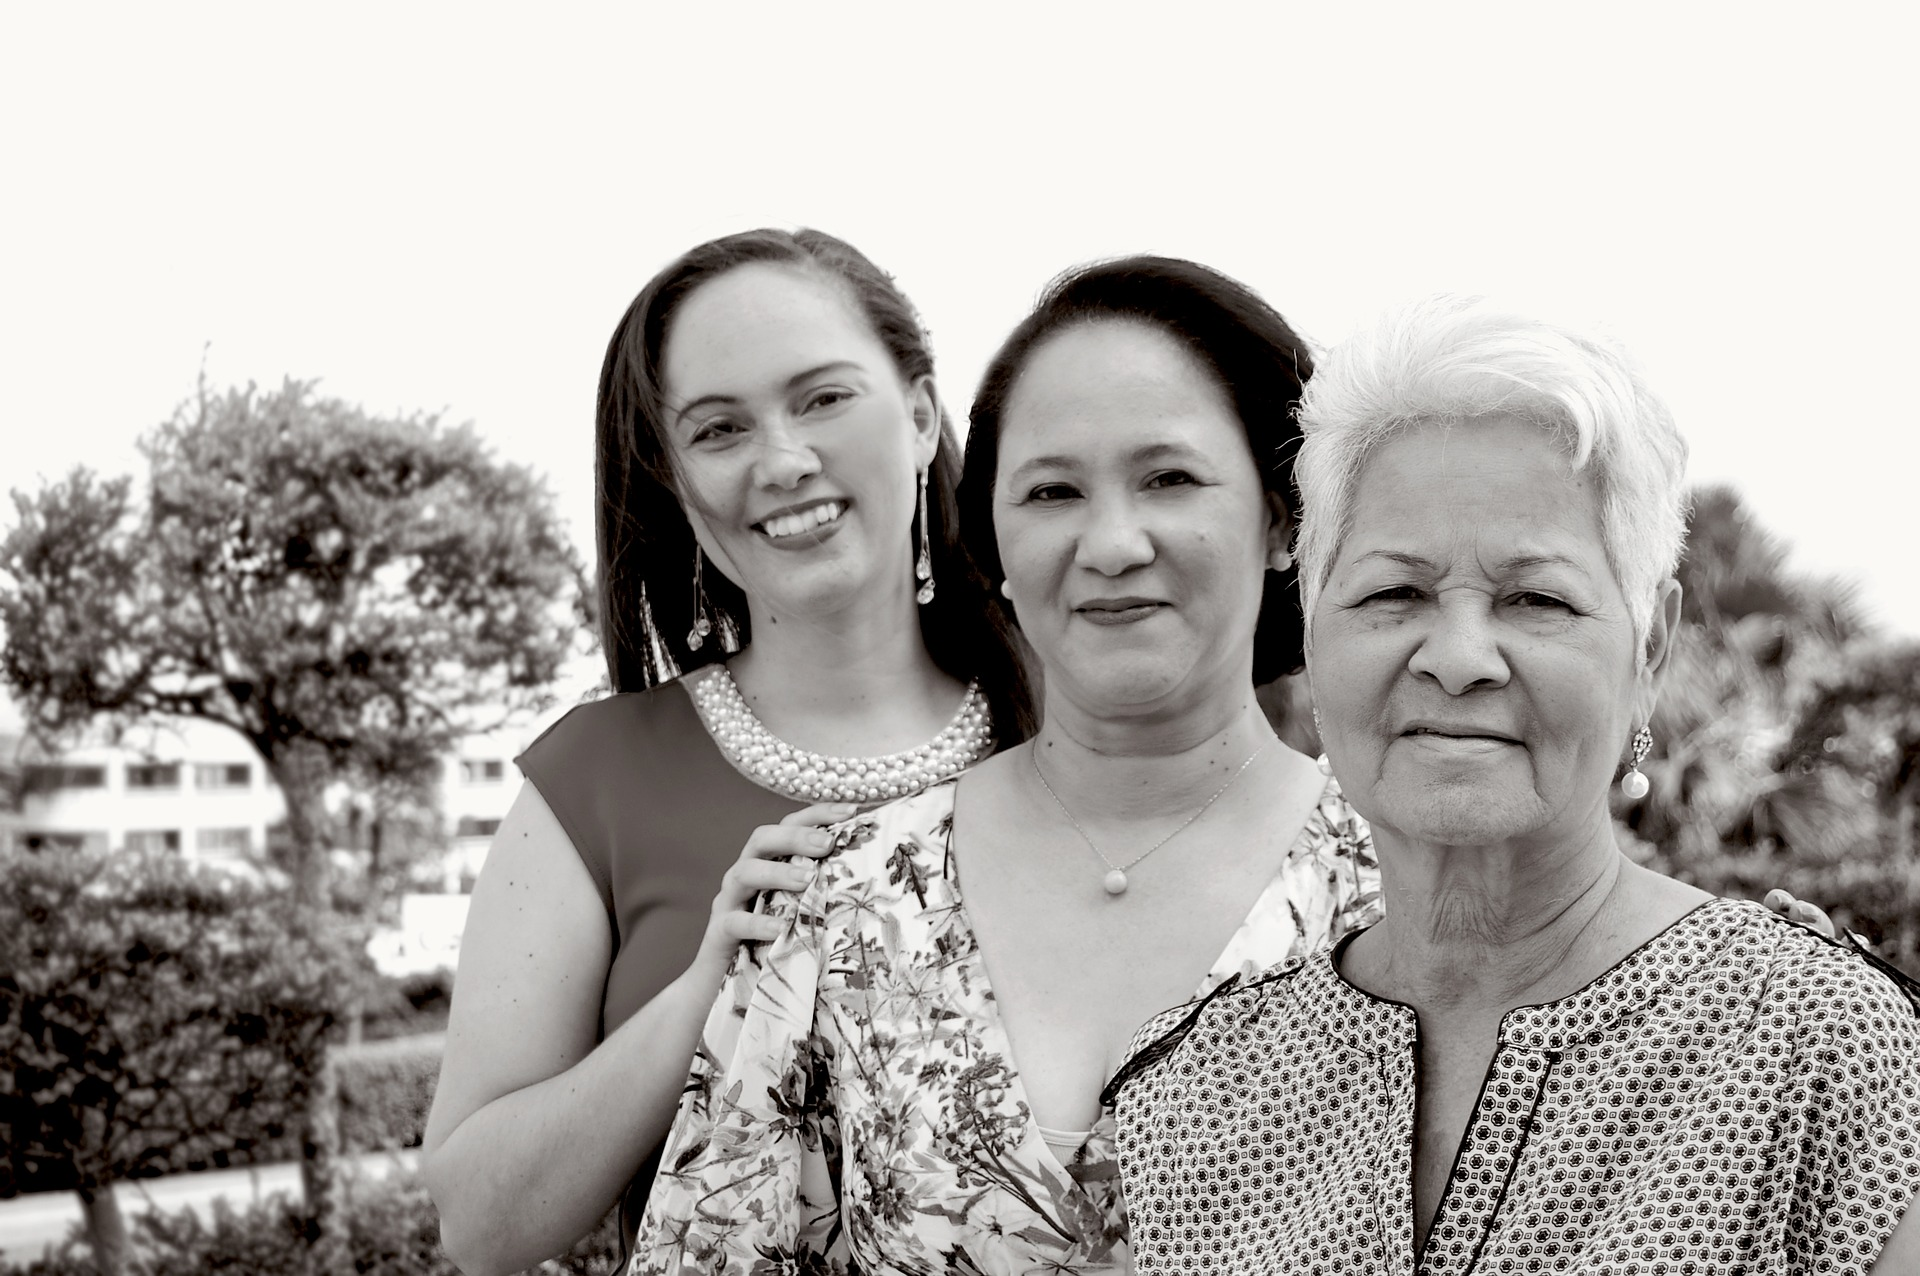 Three generations of women in a family: young adult, middle-aged mother, and older grandmother.